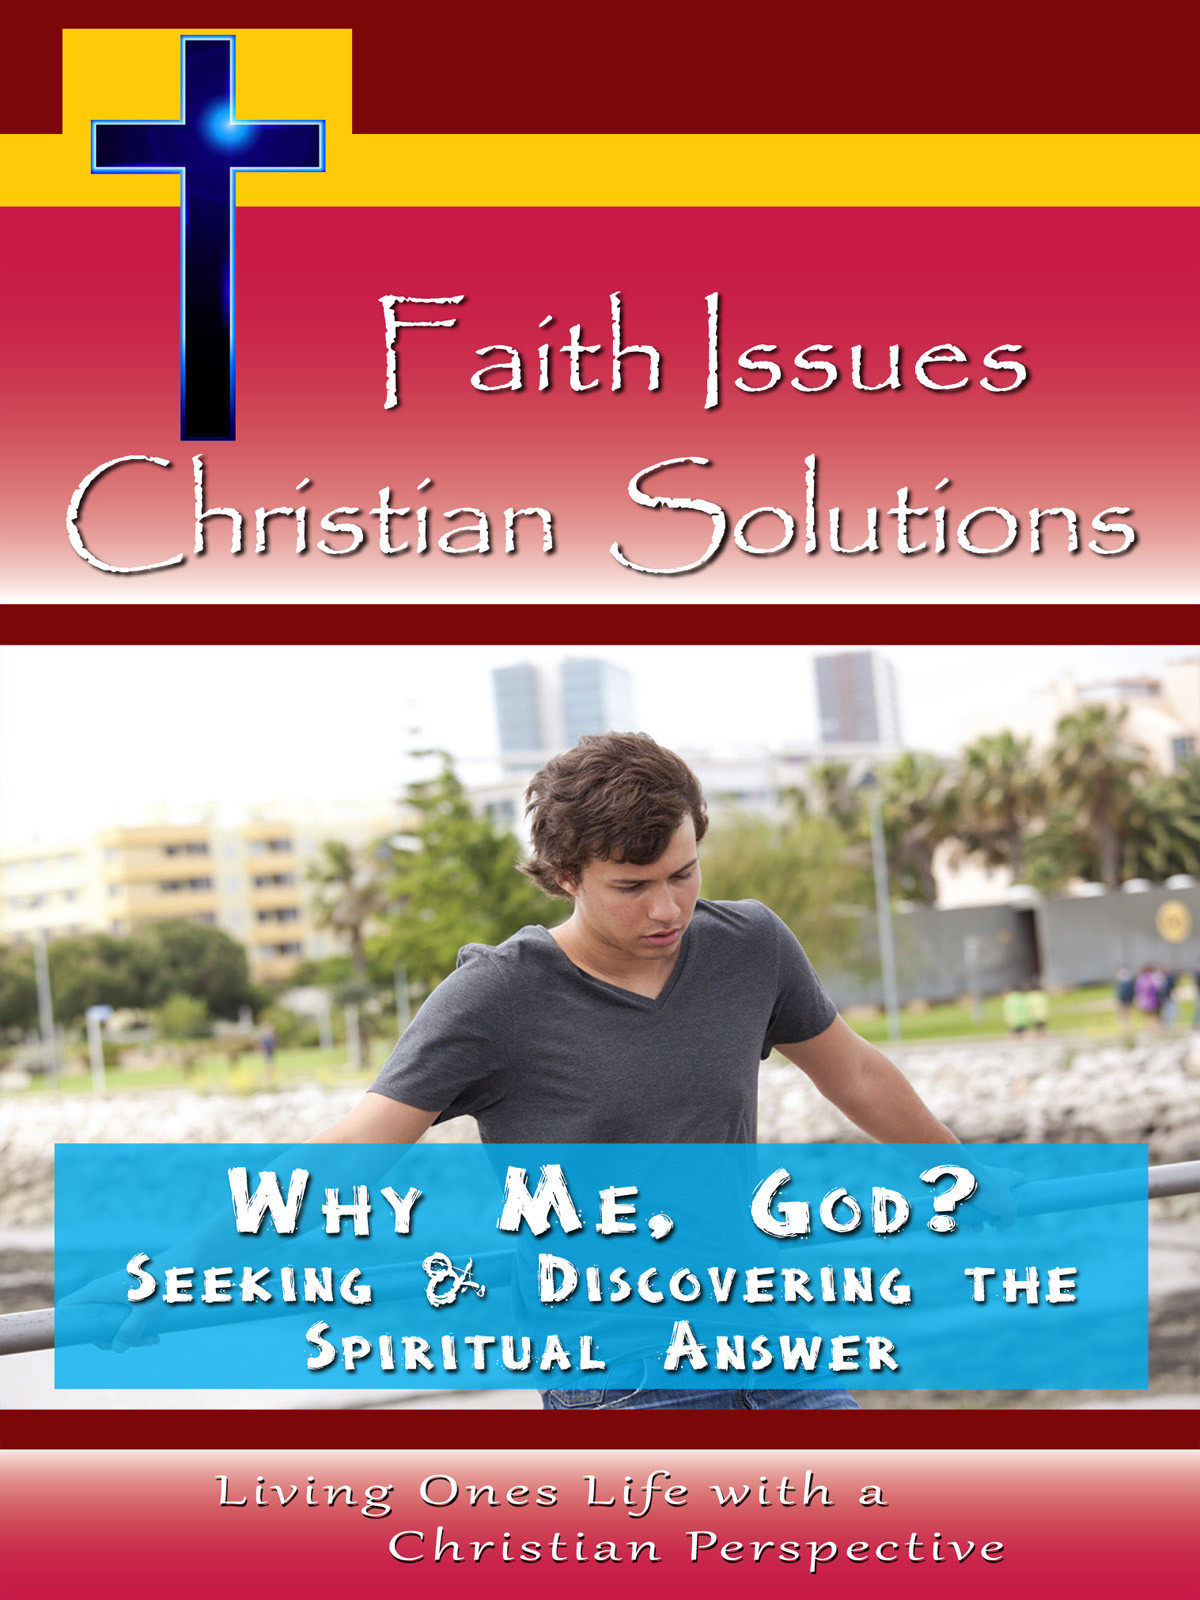 CH10021 - Why Me, God?